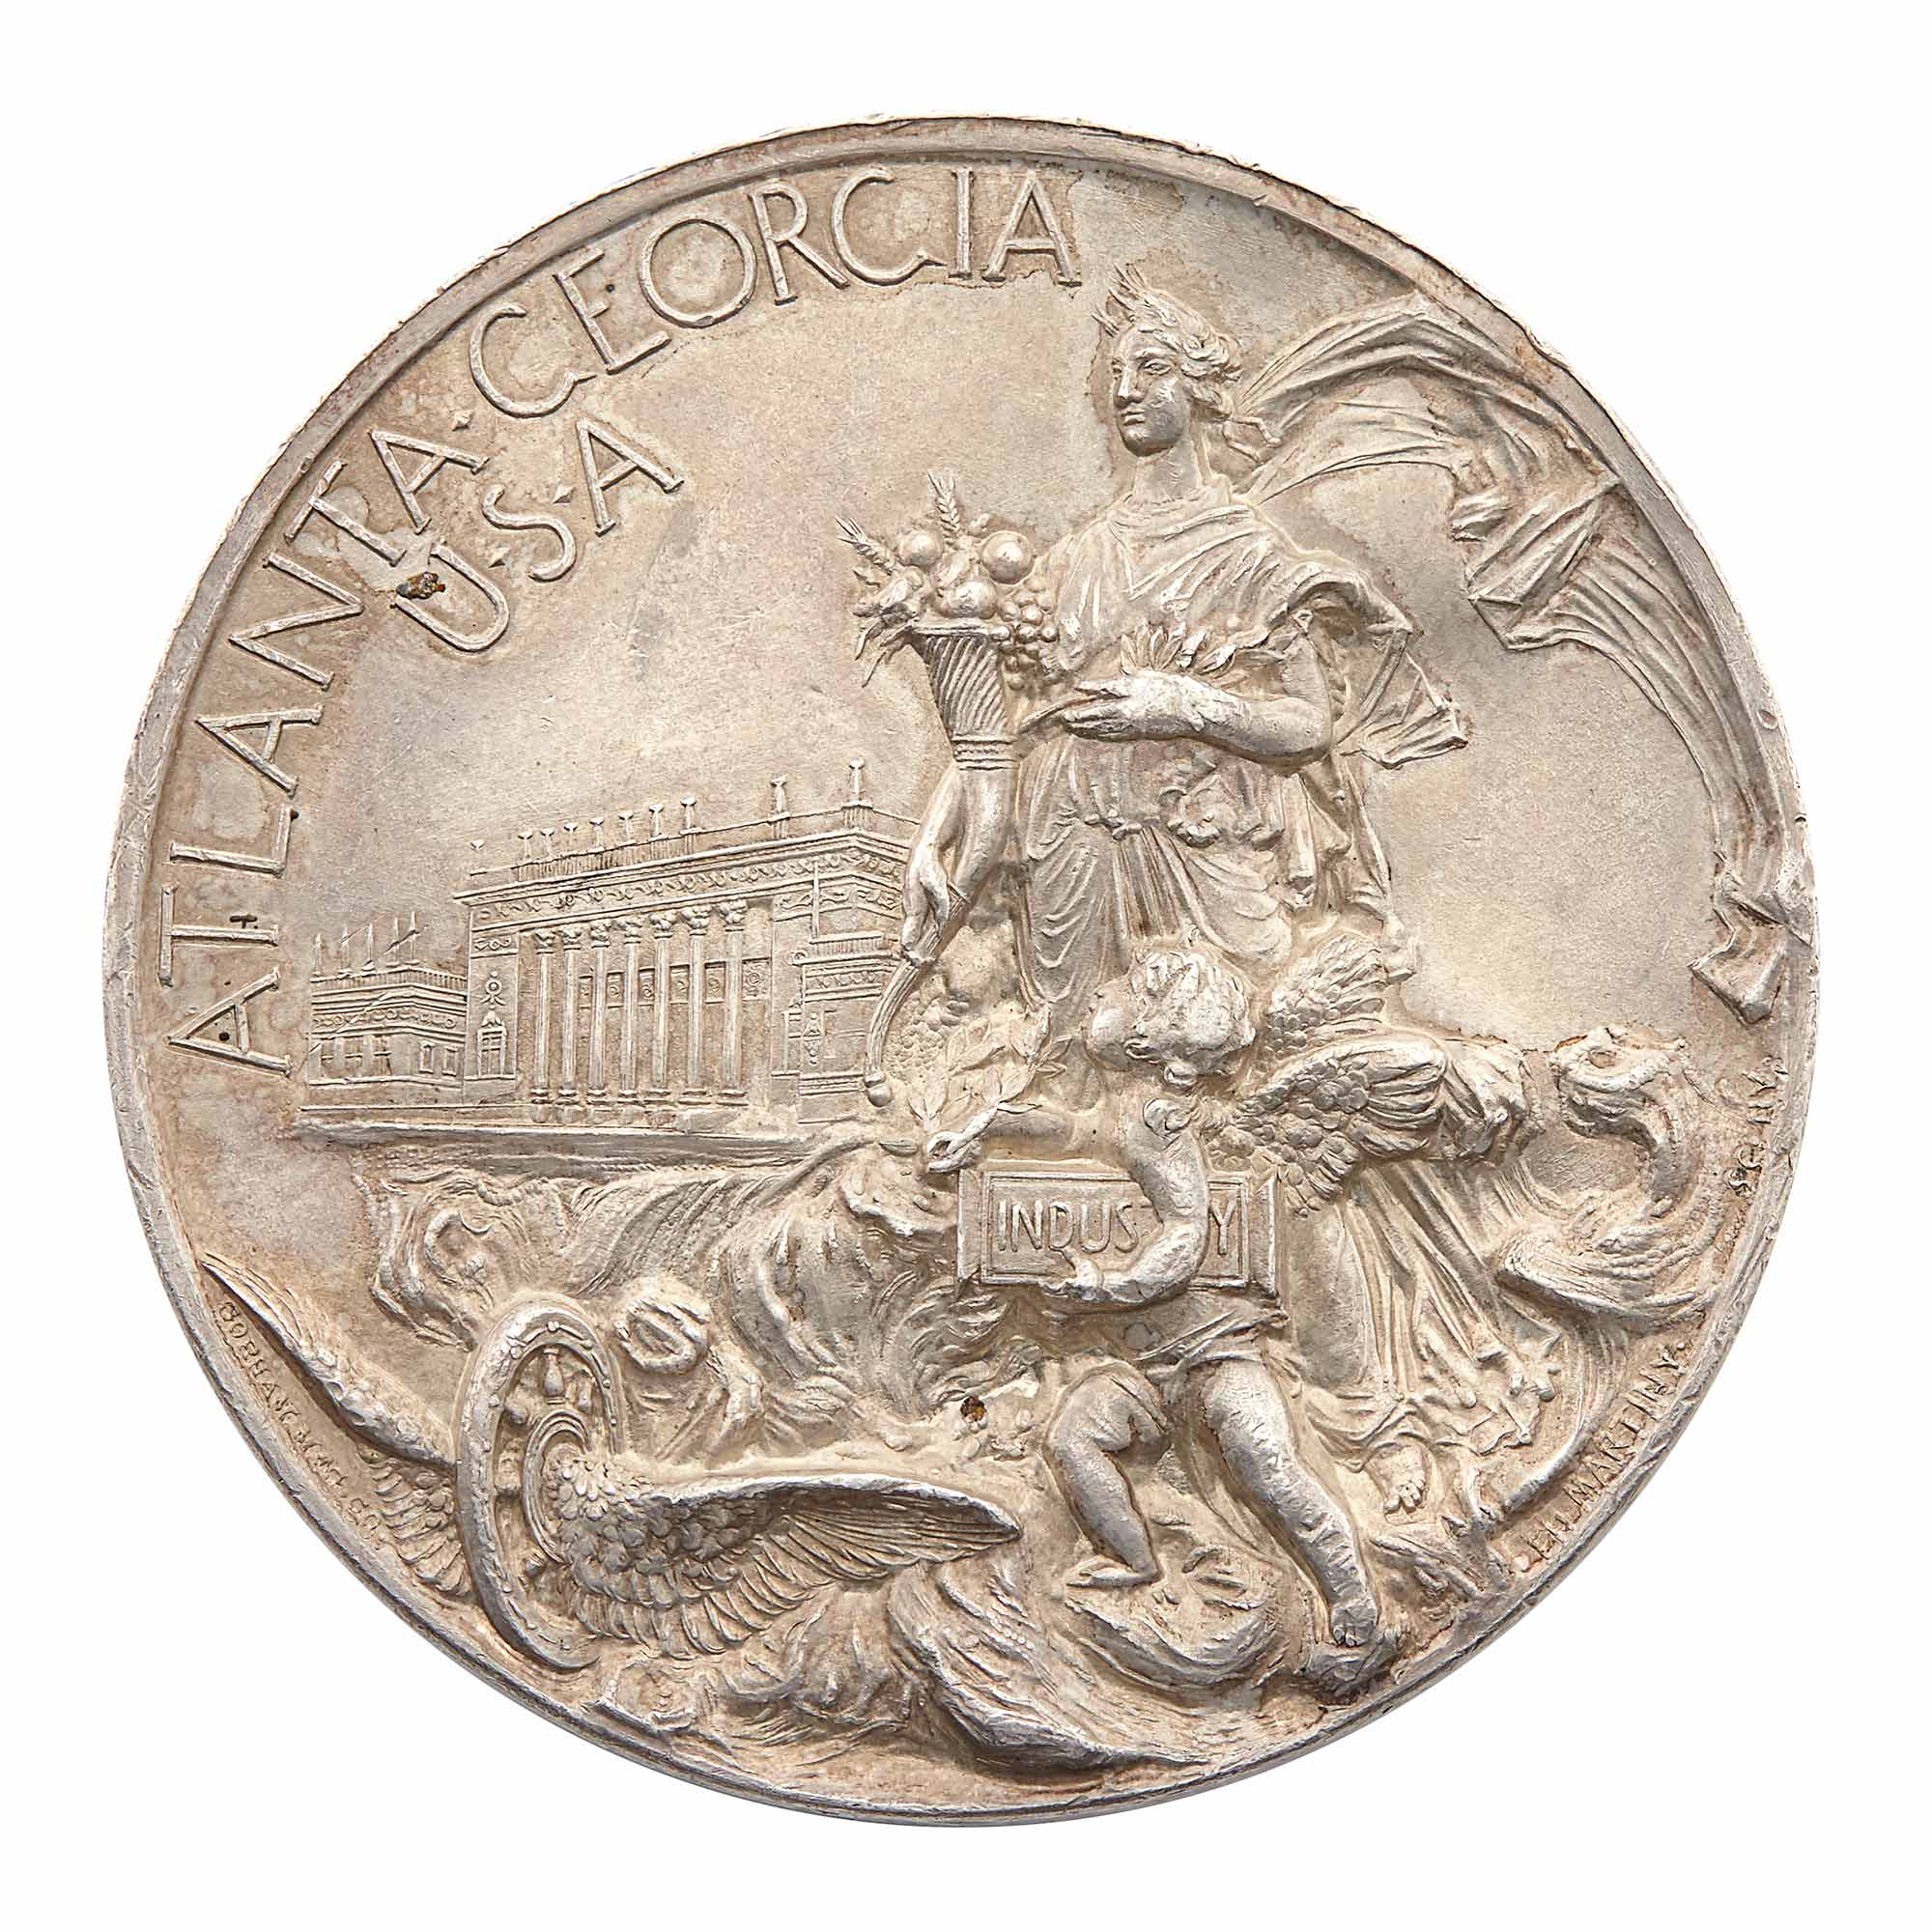 Lot image - United States 1895 Cotton States and International Exposition Silver Medal, Atlanta, GA